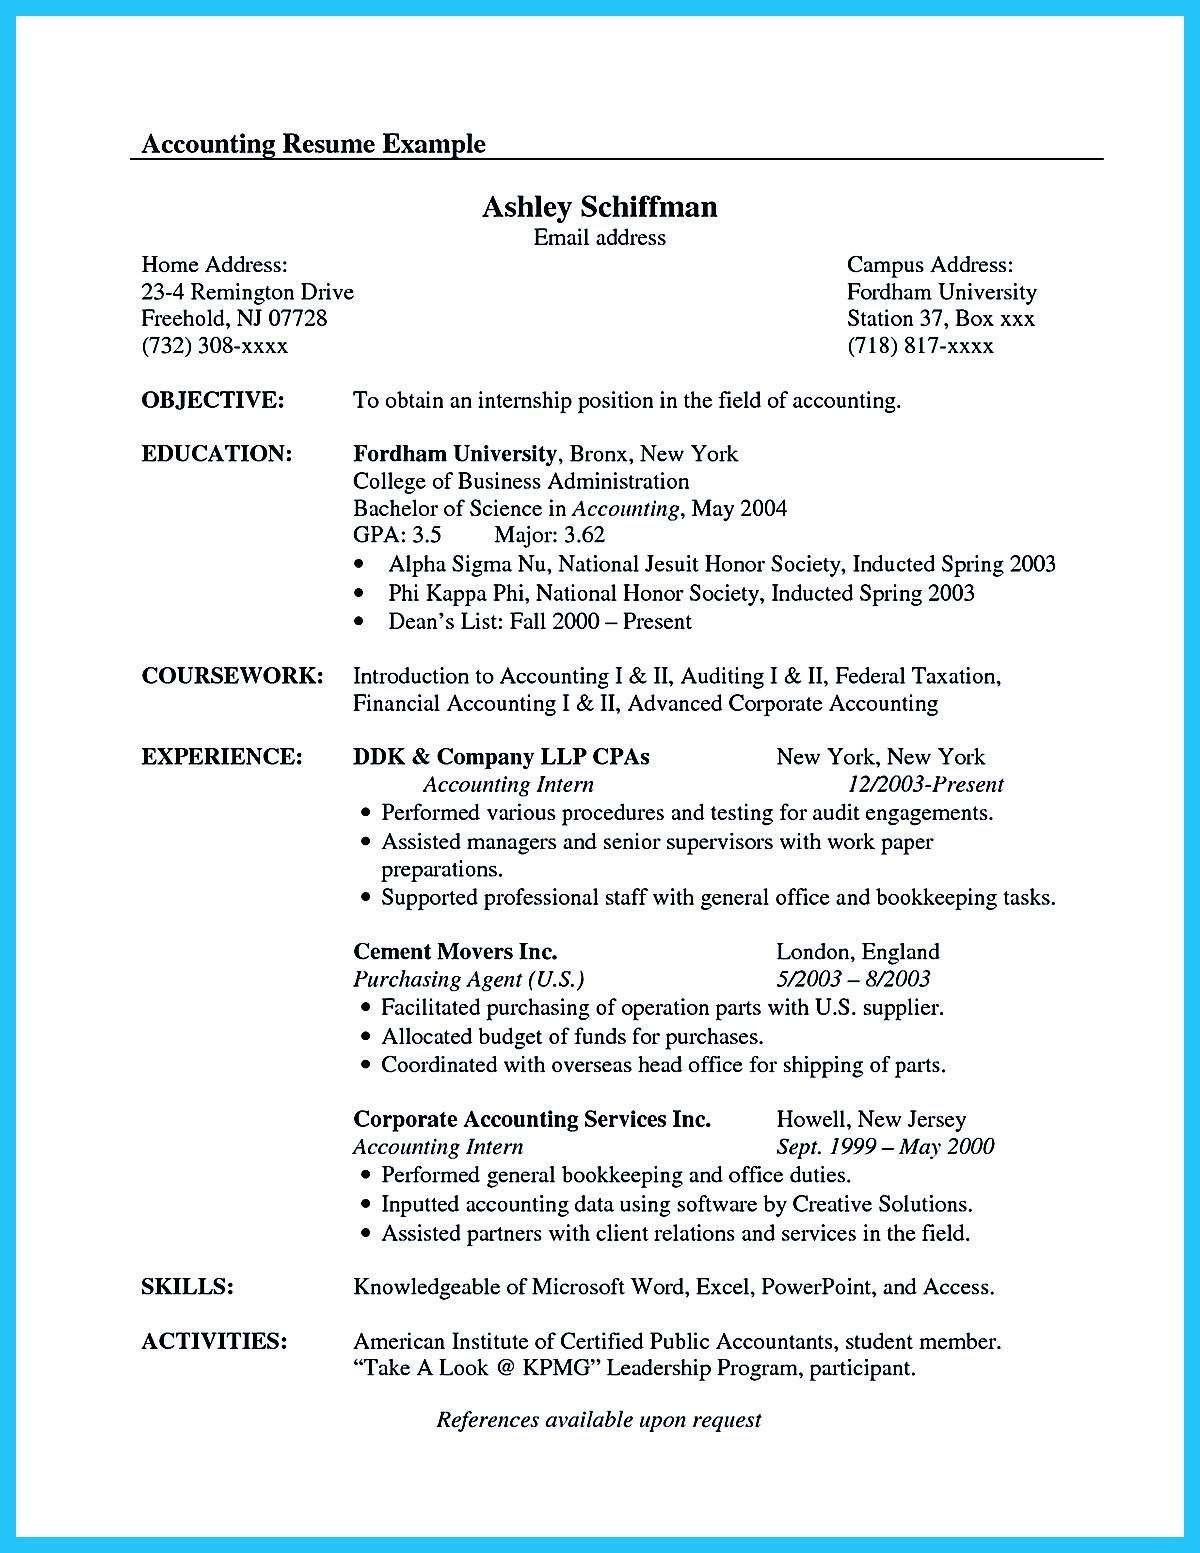 Accounting Intern Resume Samples Best Of Pin On Resume